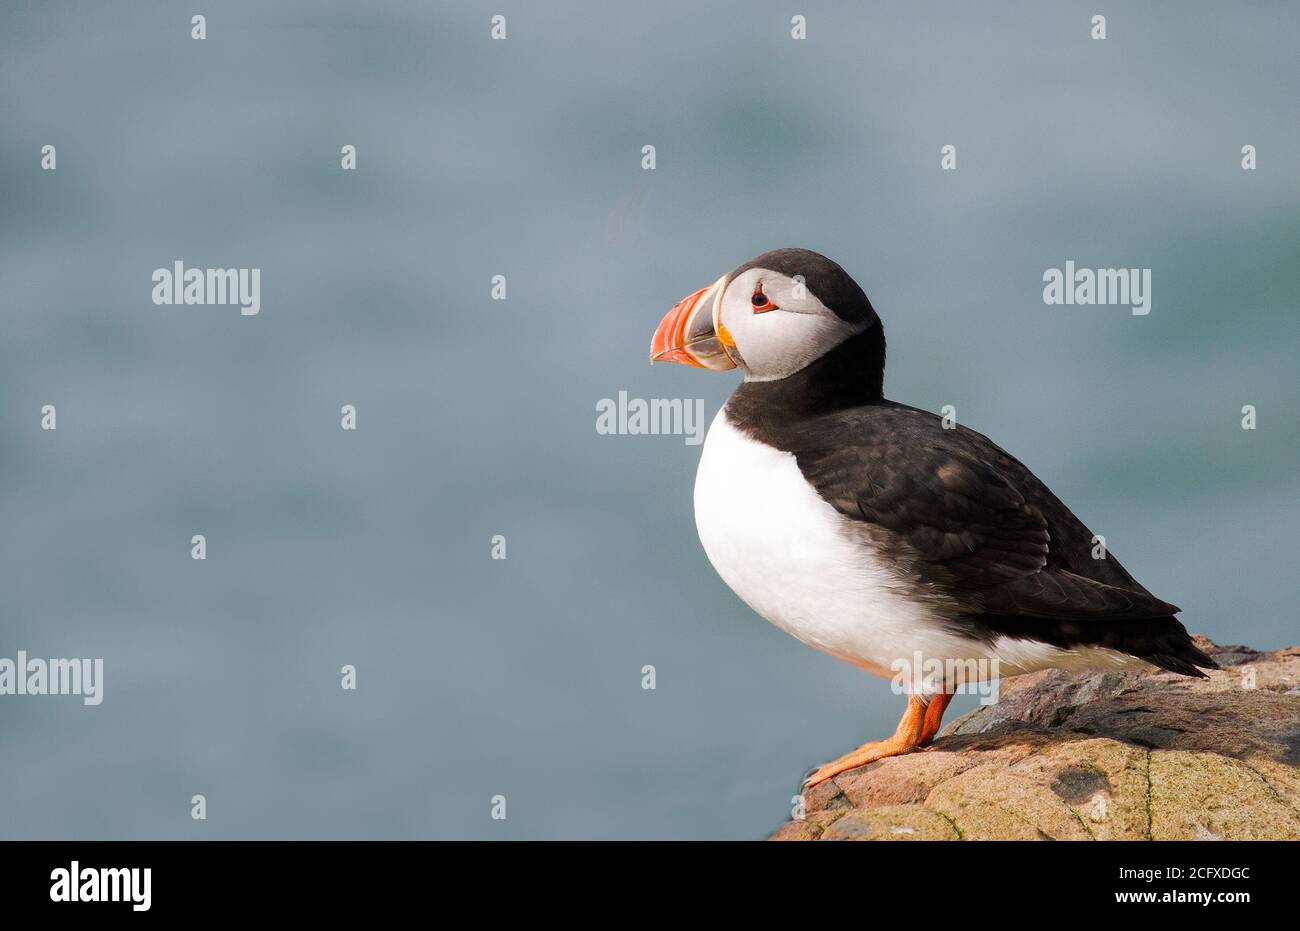 Isolated Puffin sitting on a rock on Farne Island, Northumberland, England with a natural seascape background. Stock Photo